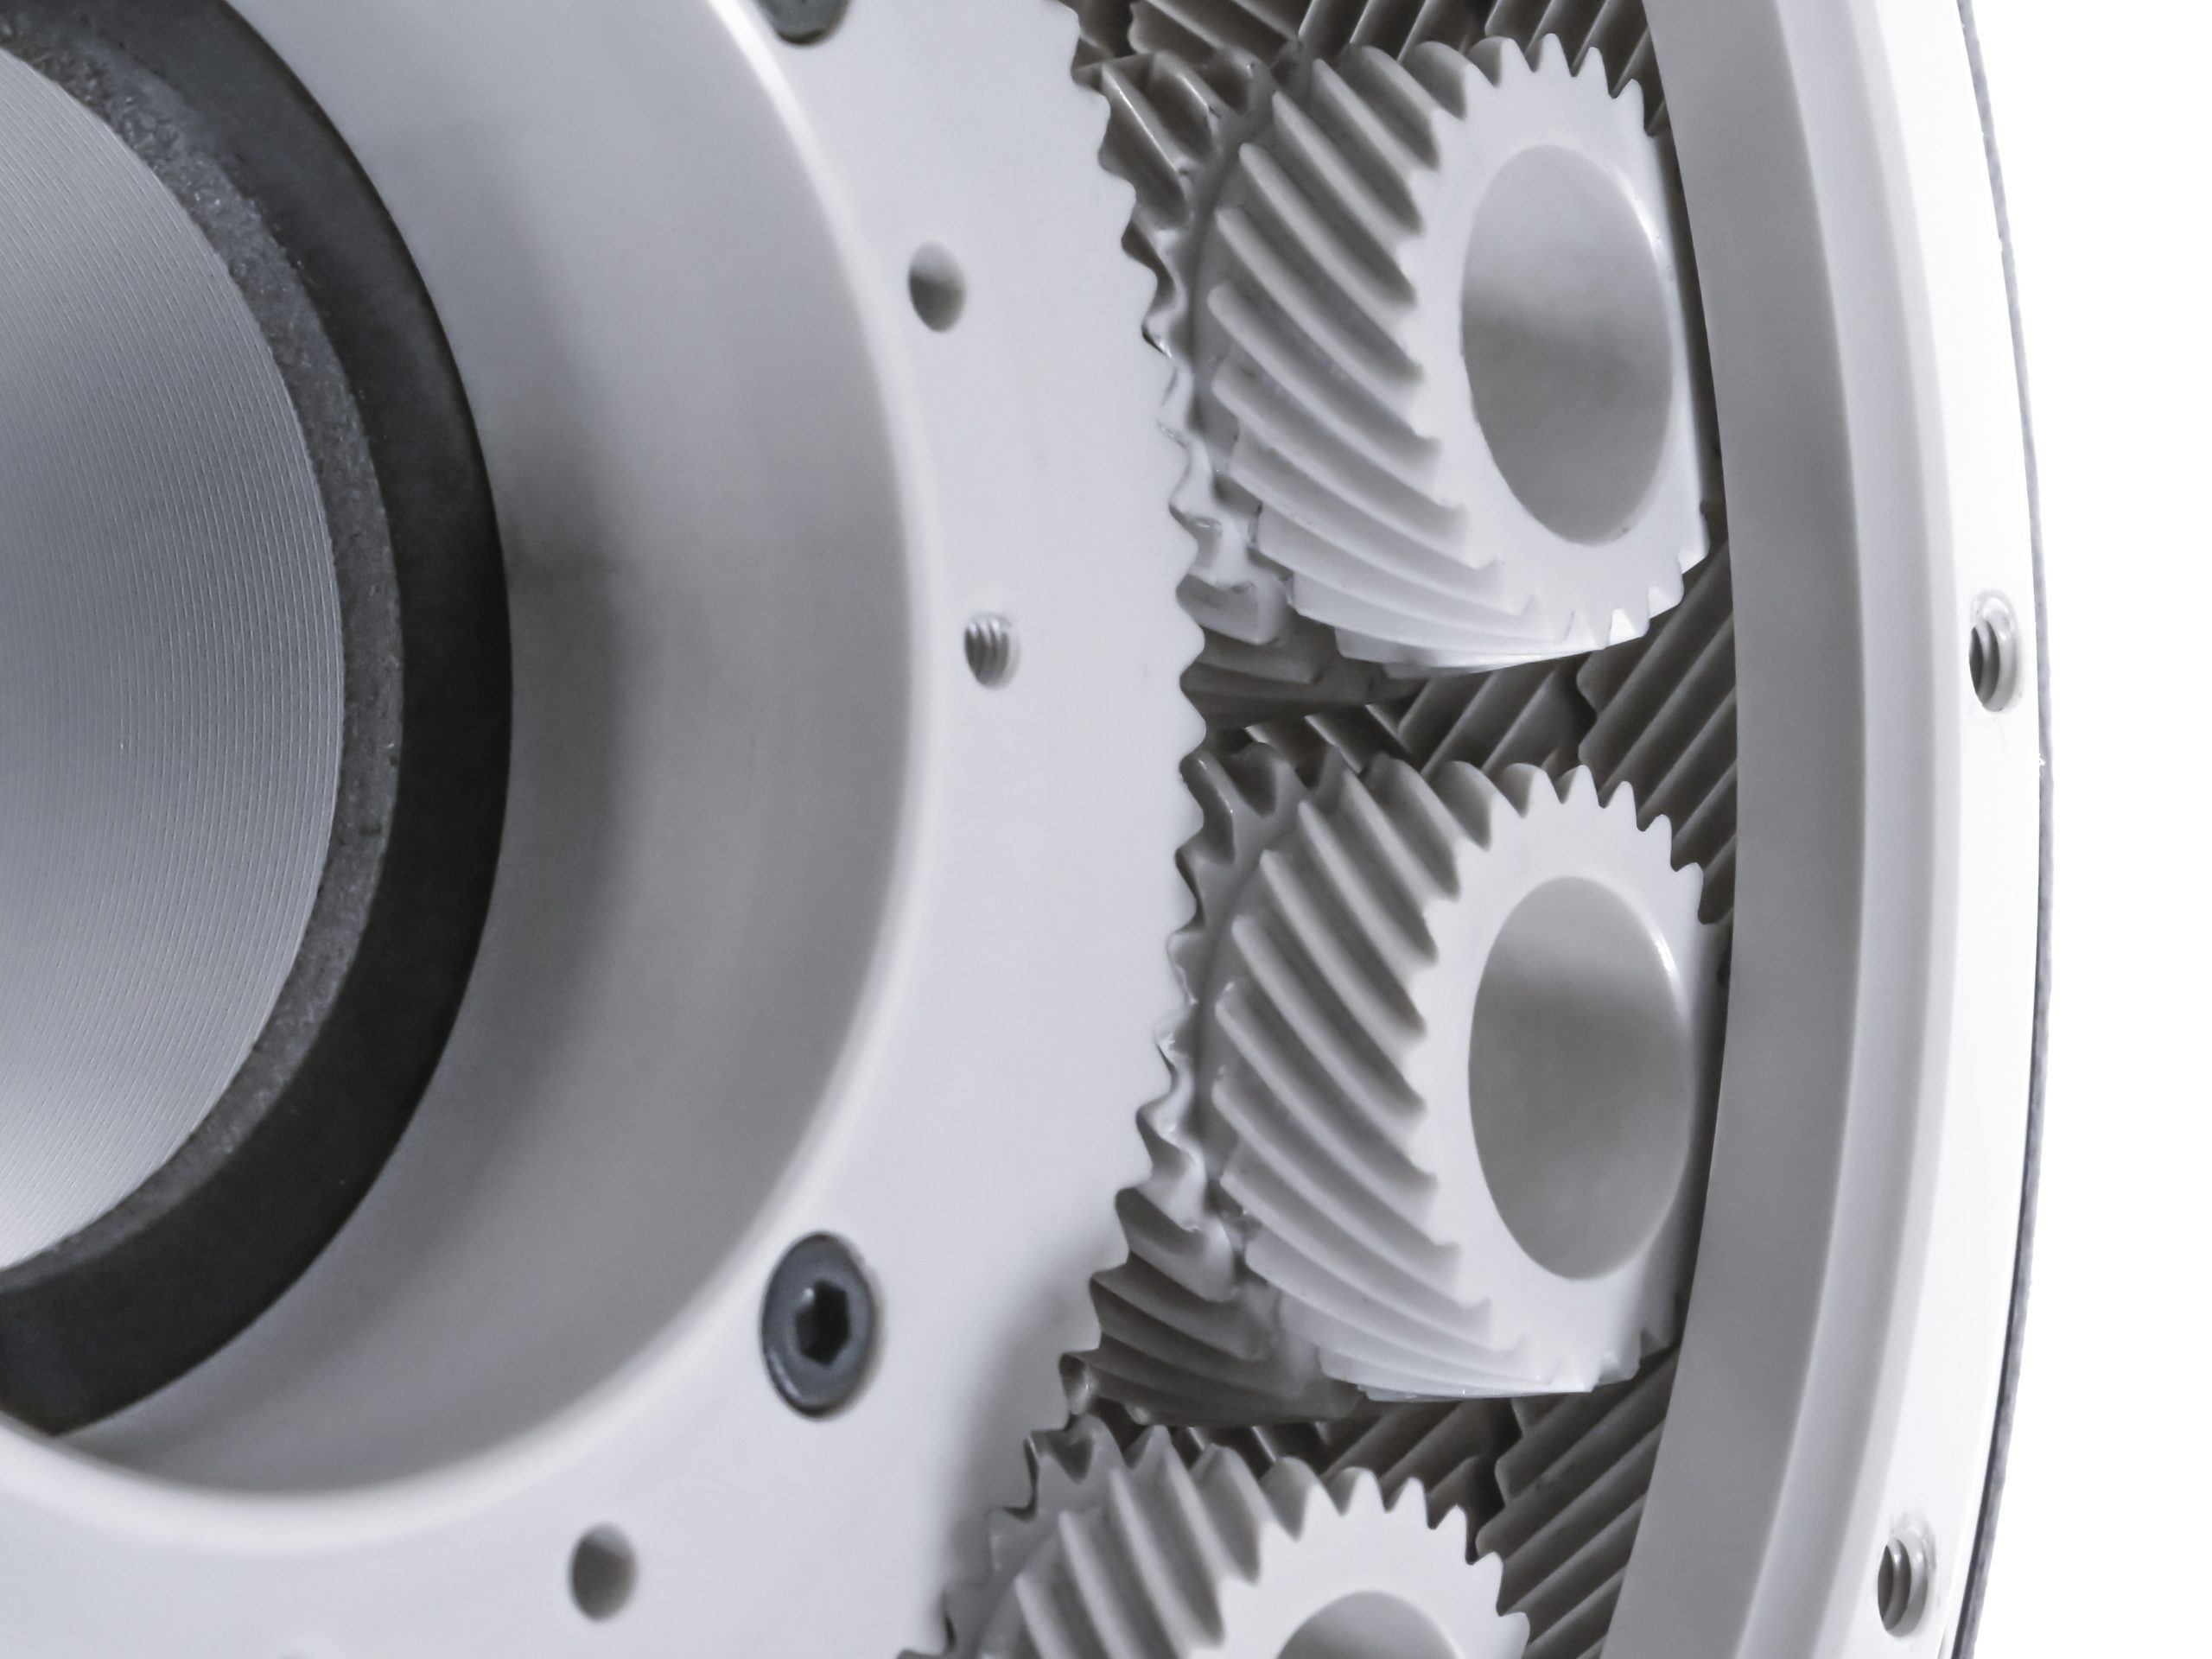 Close up of a gear